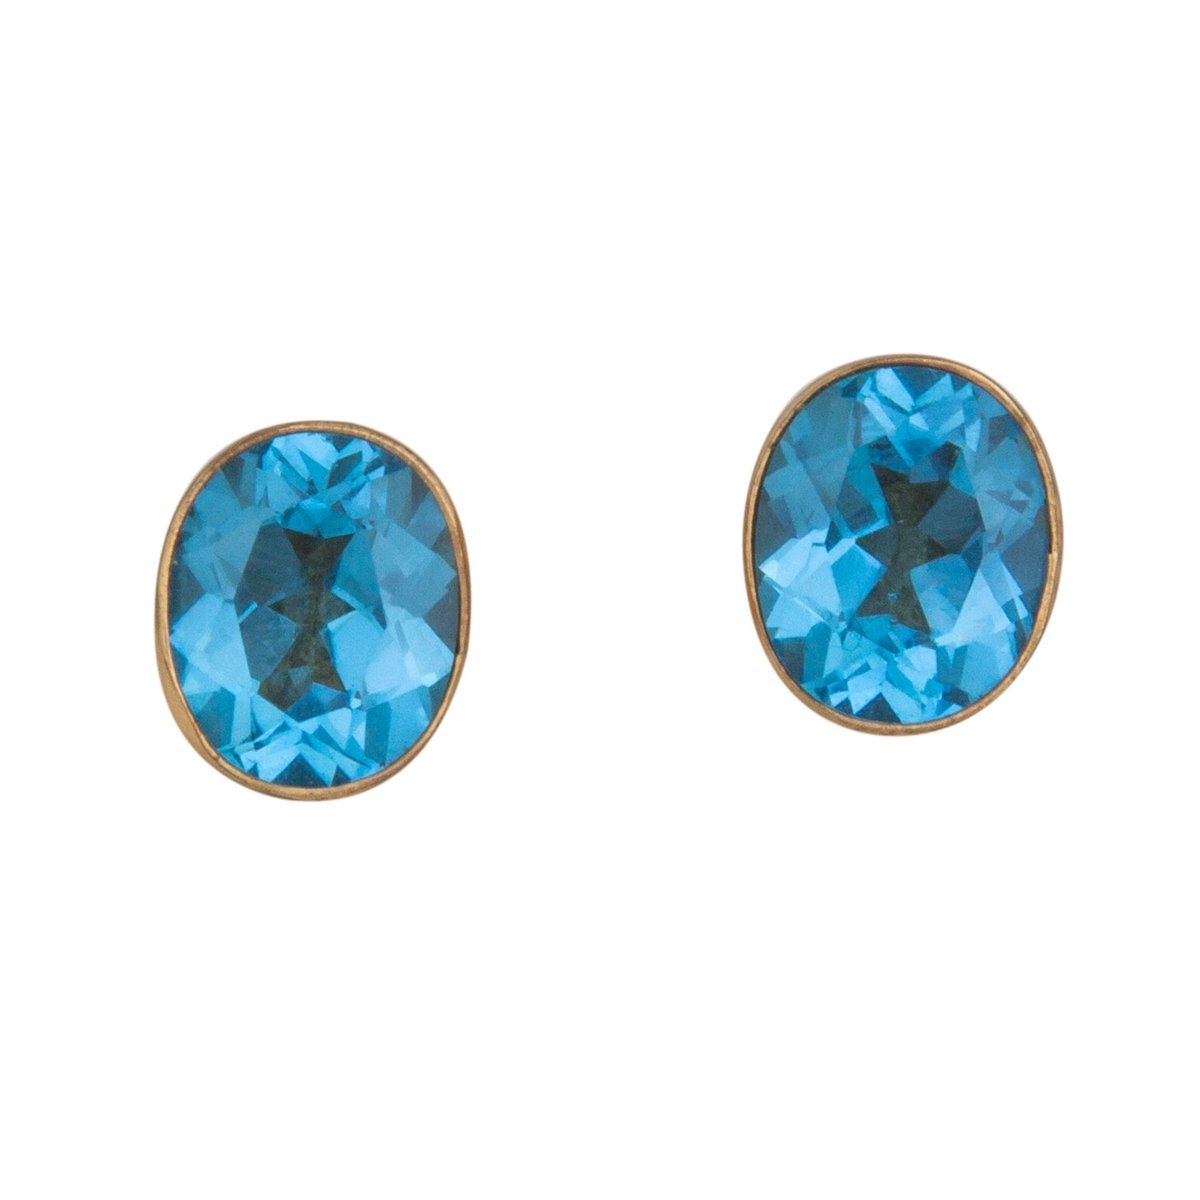 alchemia-blue-topaz-post-earrings - 1 - Charles Albert Inc